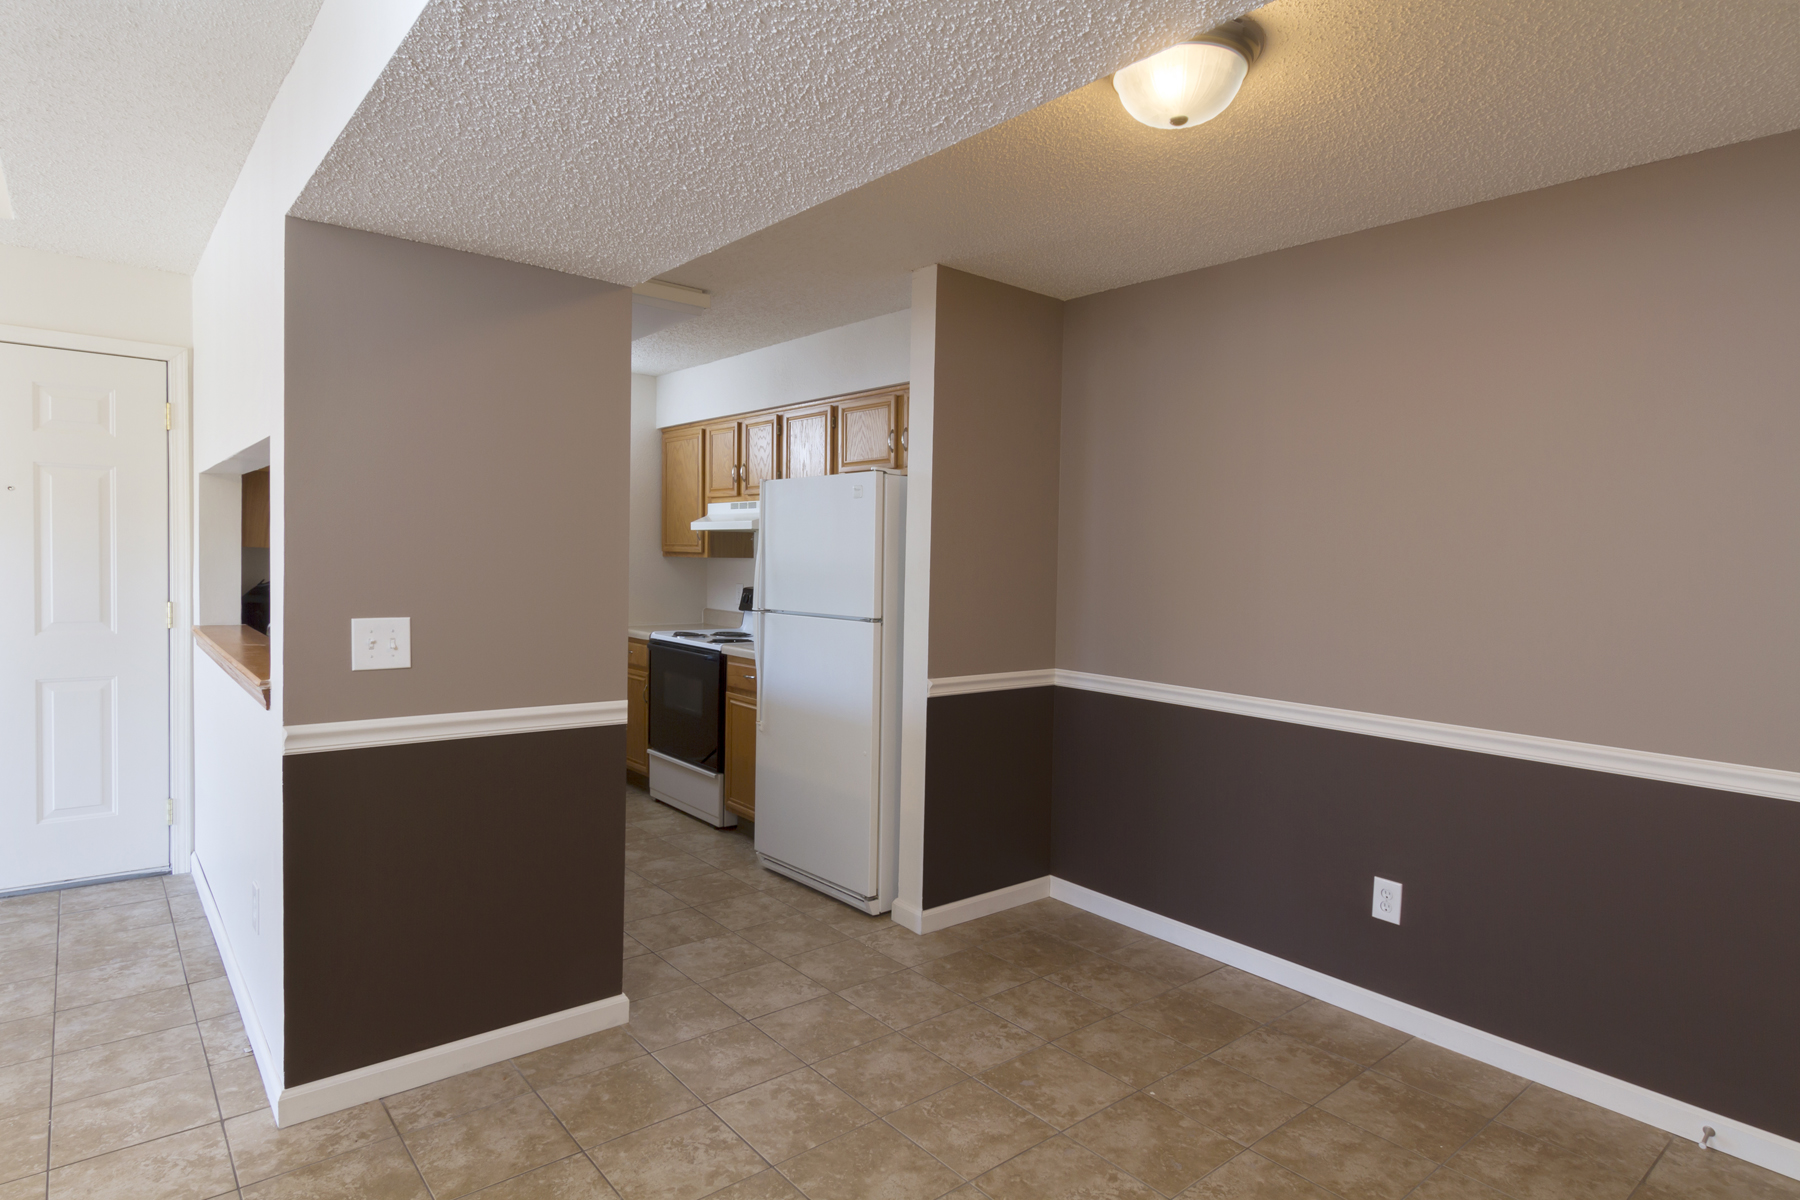 2 Bedroom Apartments Springfield Mo